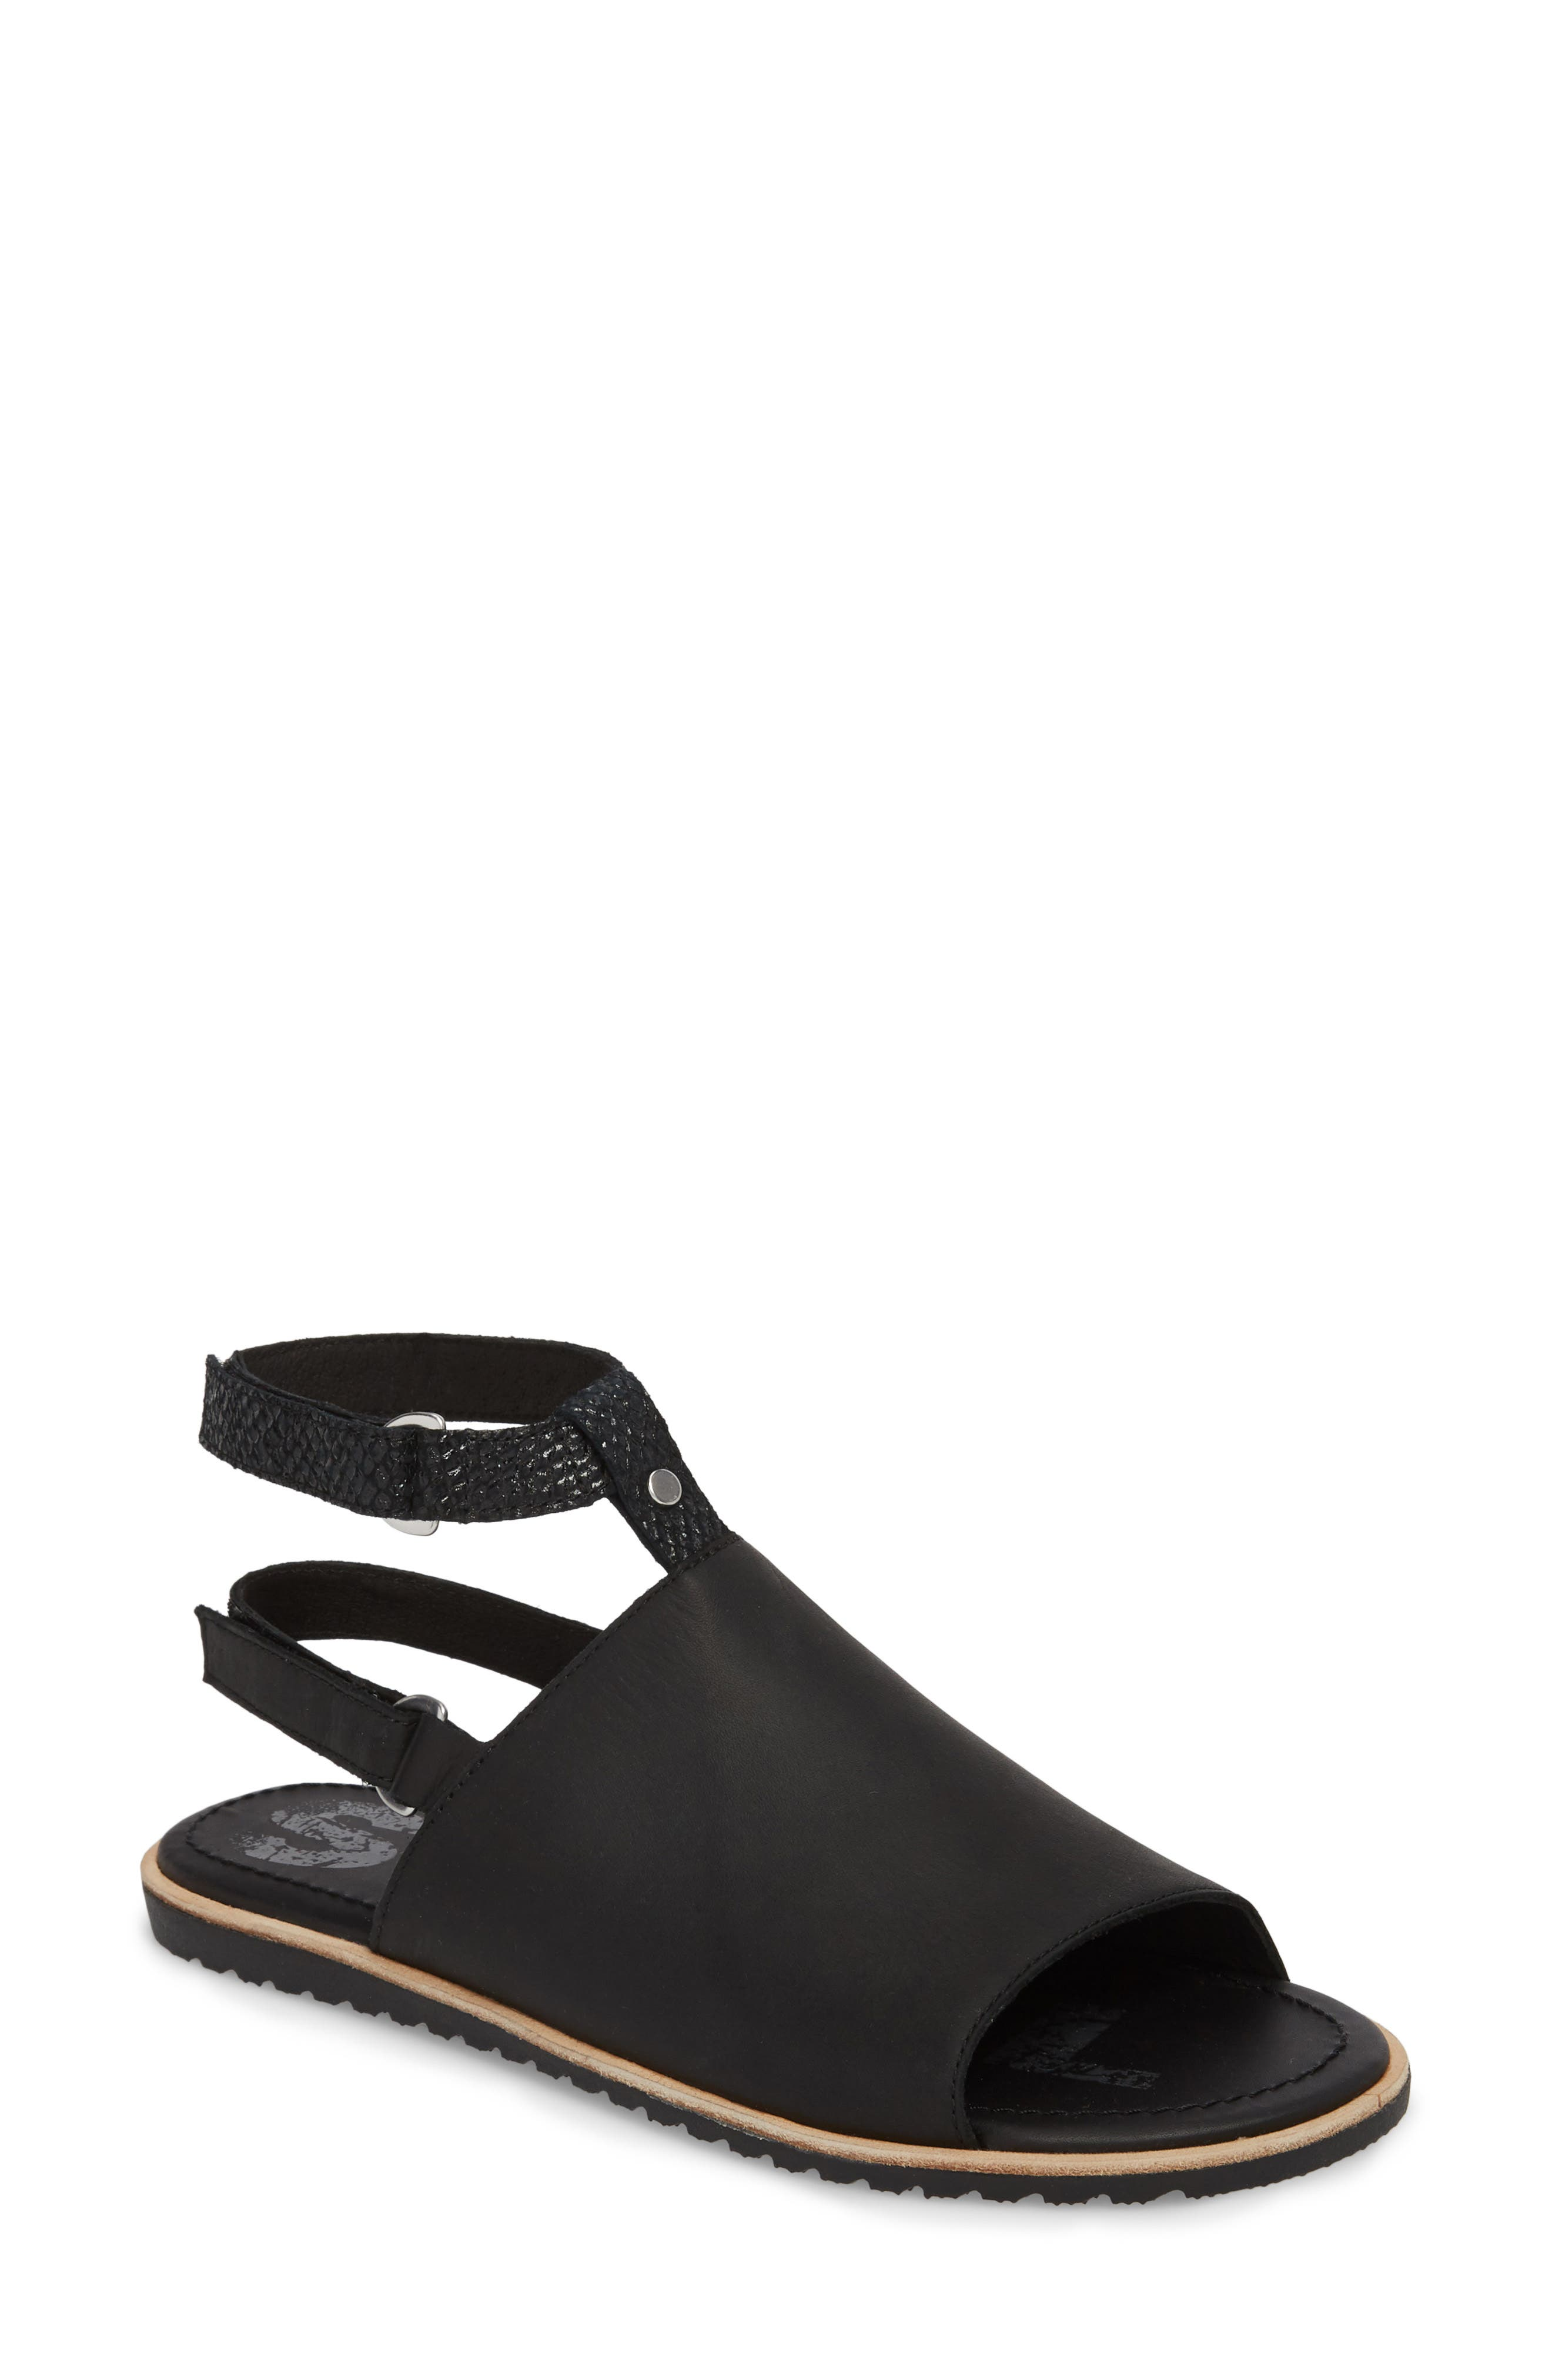 Ella Strappy Sandal,                             Main thumbnail 1, color,                             Black